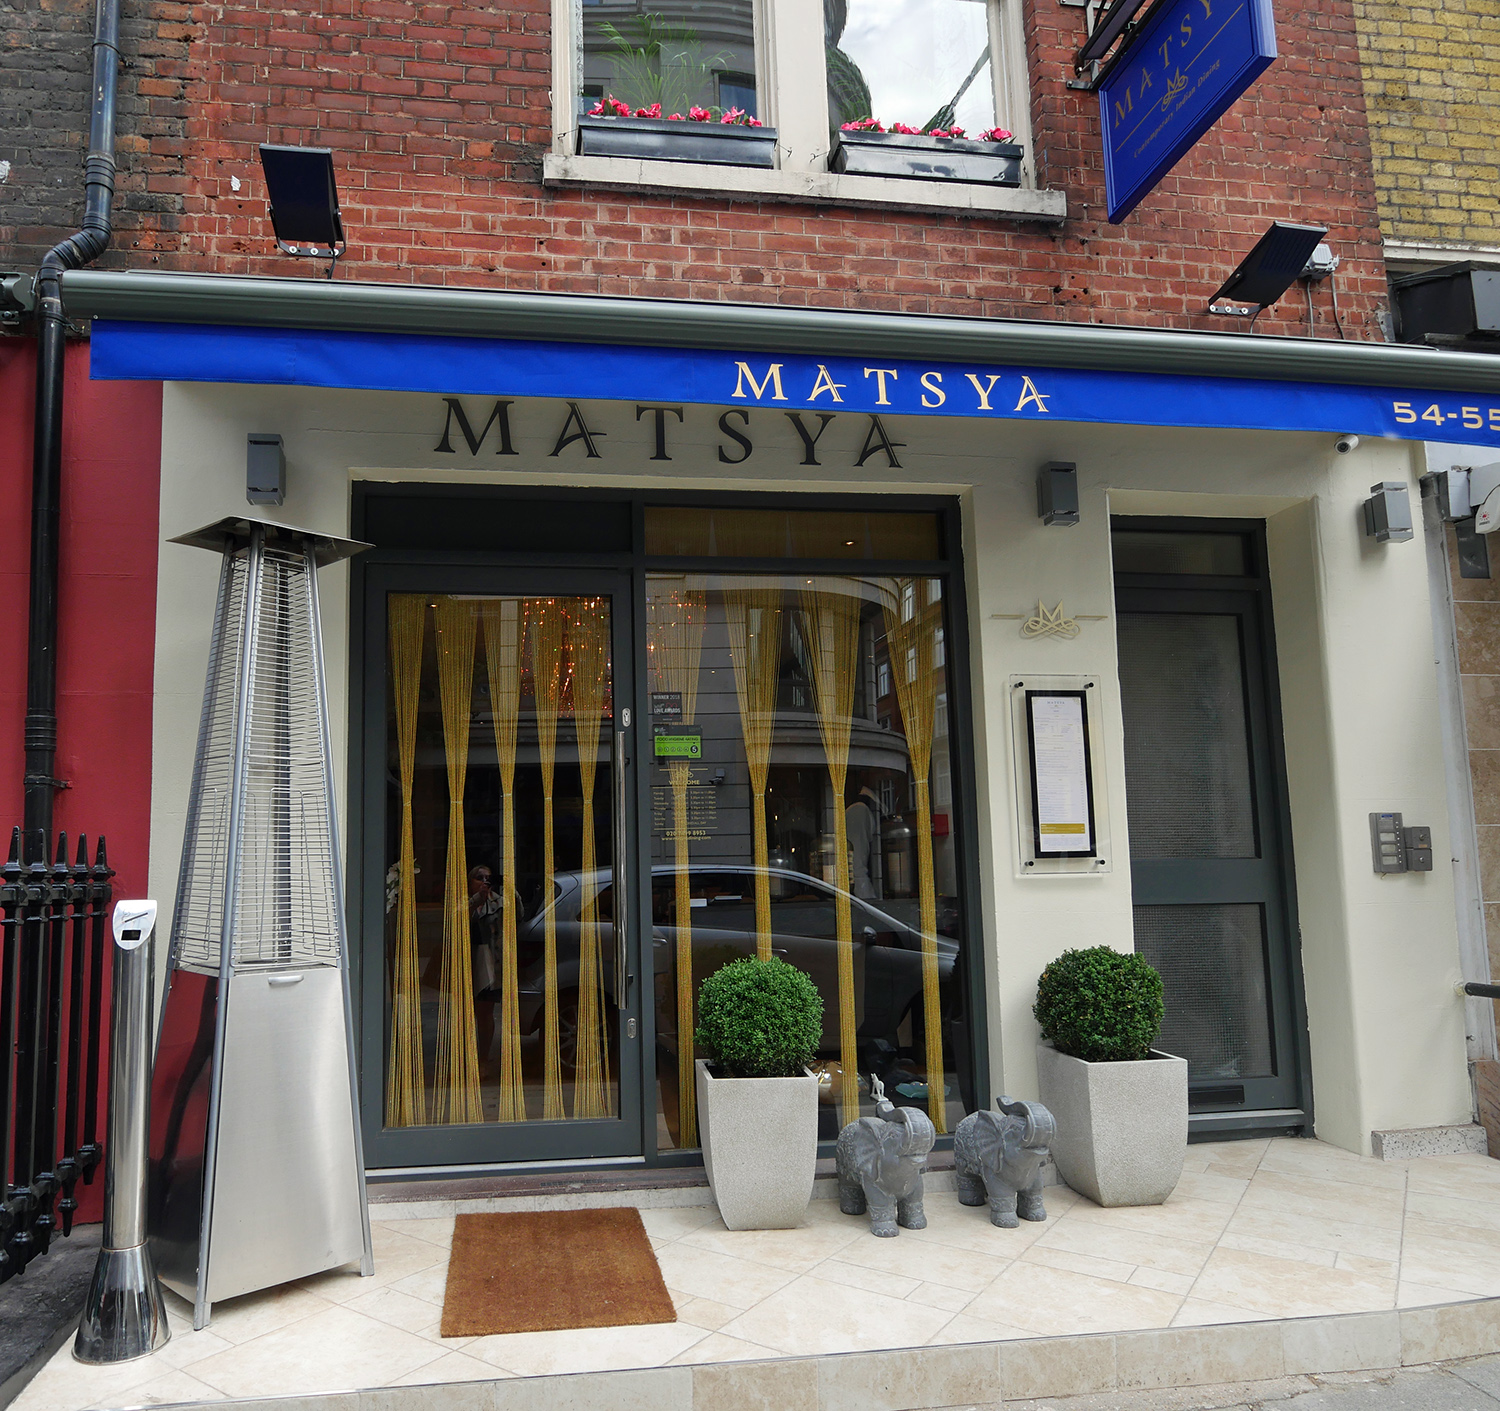 Matsya Indian Restaurant Mayfair - exterior